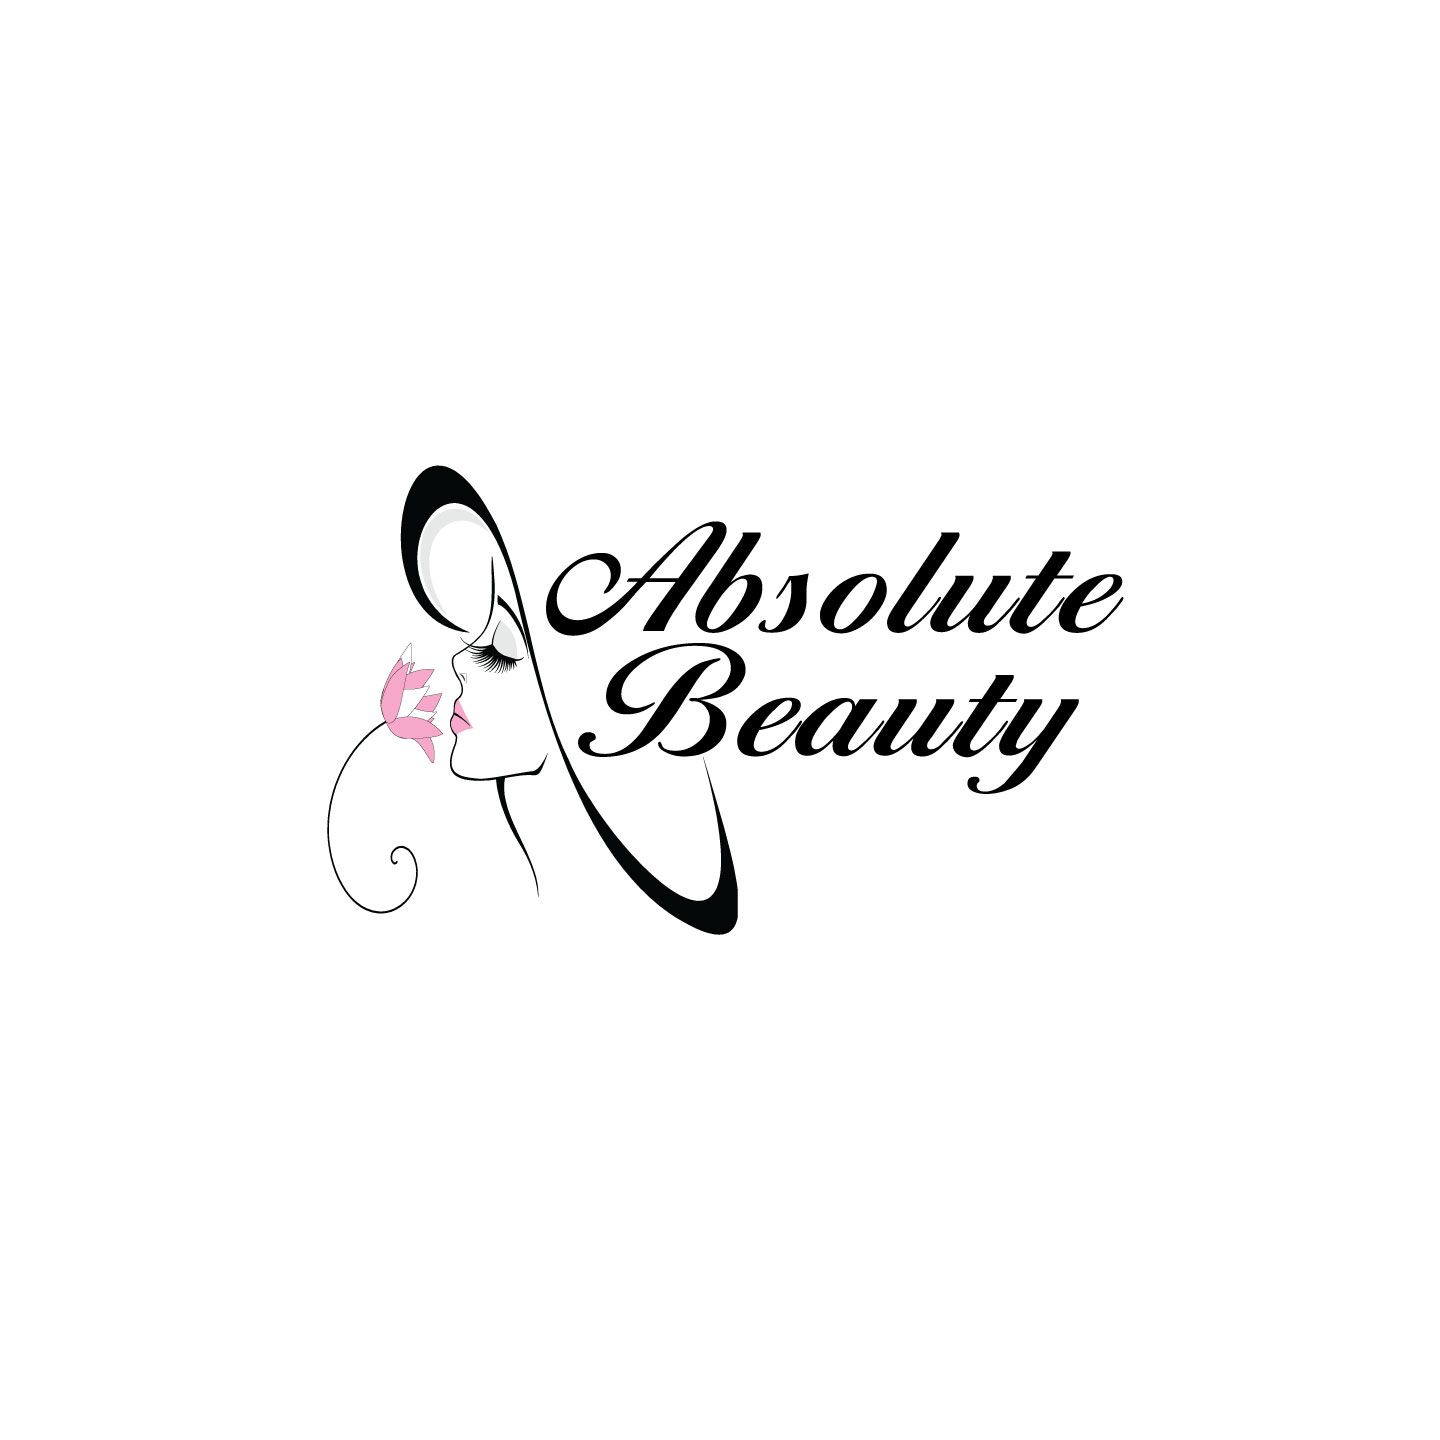 Beauty Parlour Logo: 19 Creative Beauty Salon And Spa Logo Design Ideas